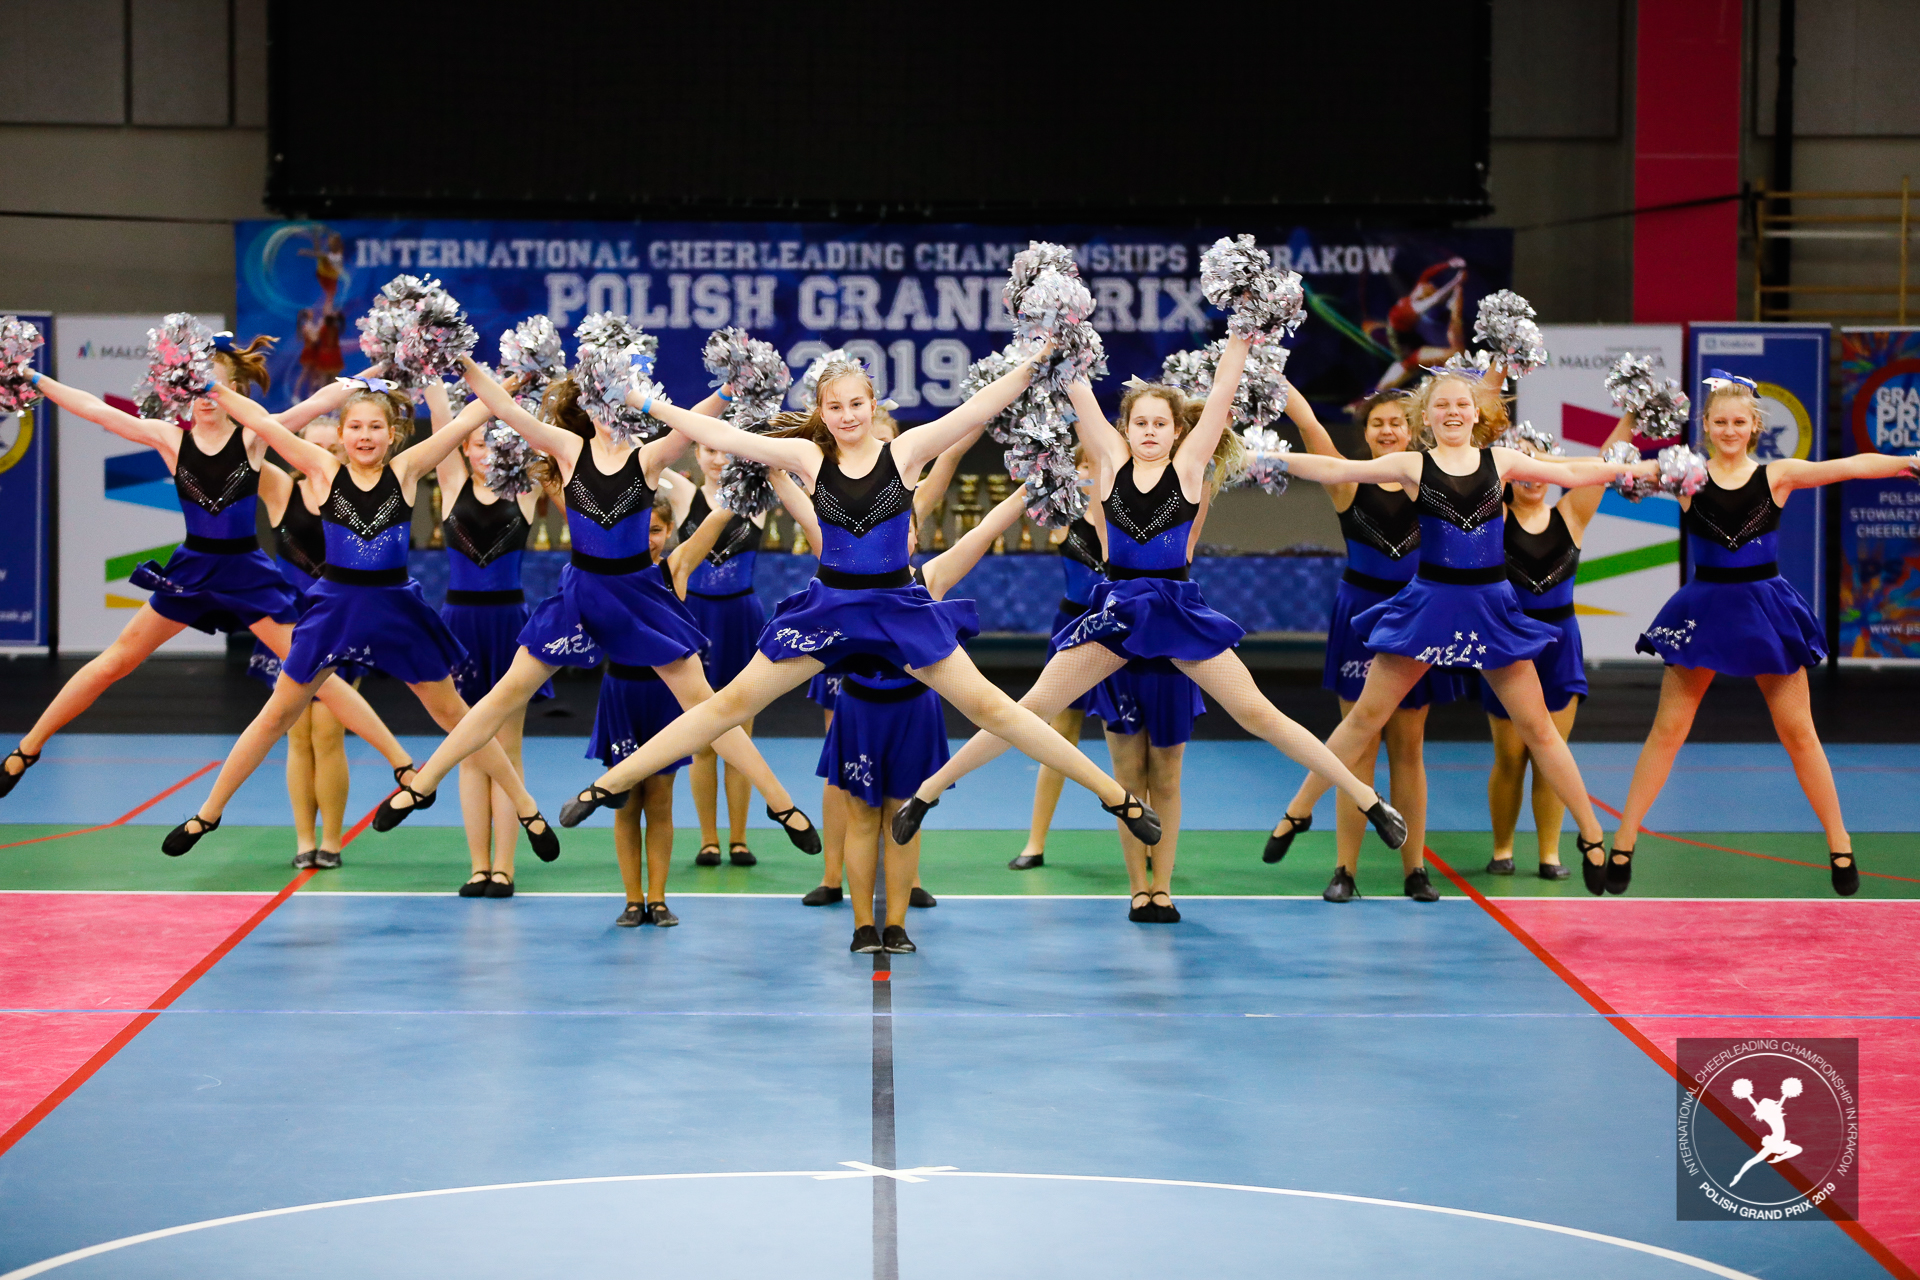 International Cheerleading Championships in Kraków